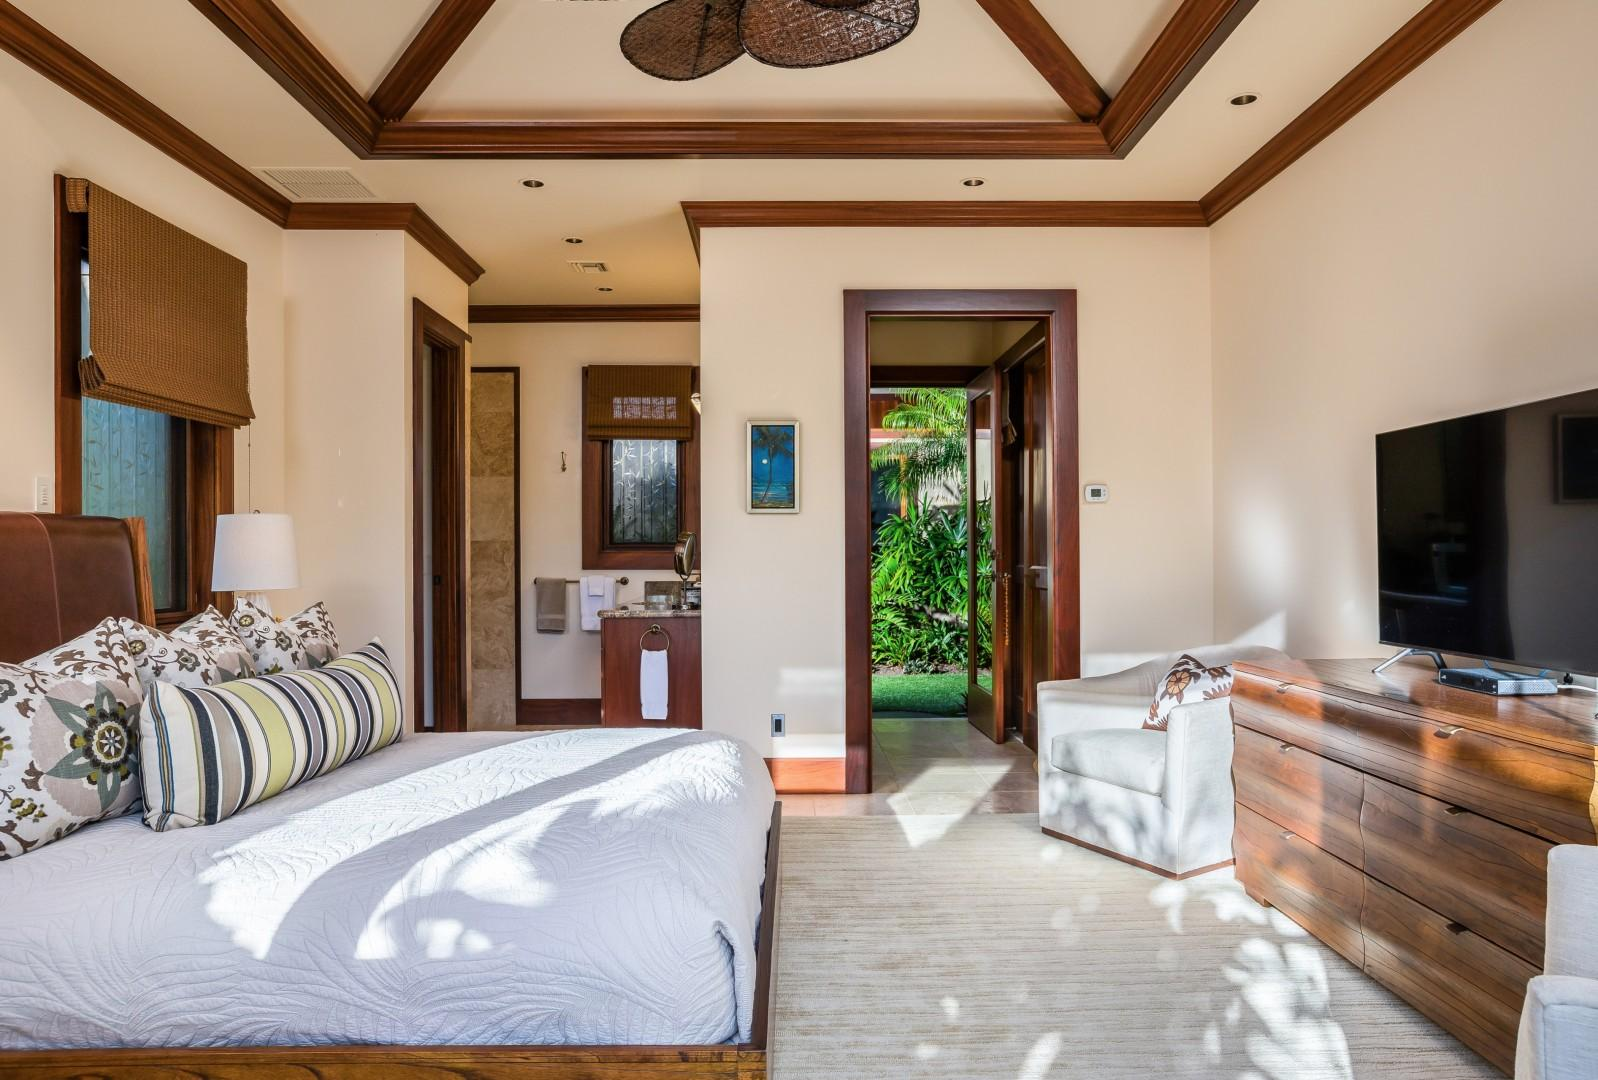 Fourth bedroom suite with vaulted ceilings. View toward private kitchenette and private entrance.